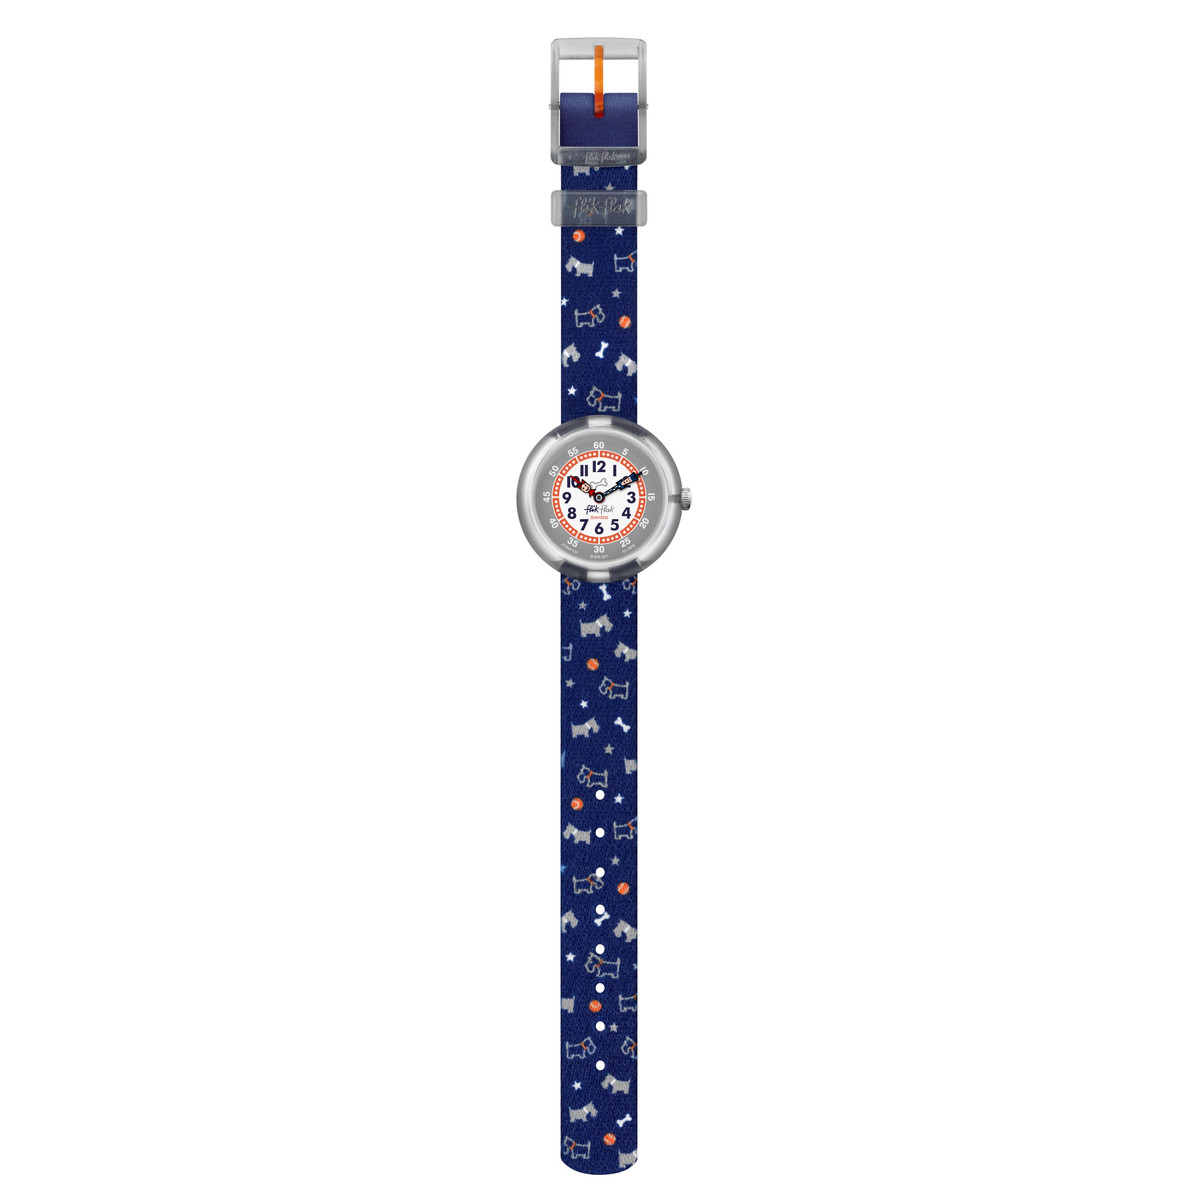 Montre Flik Flak mixte Scott'n'terry - vue VD1